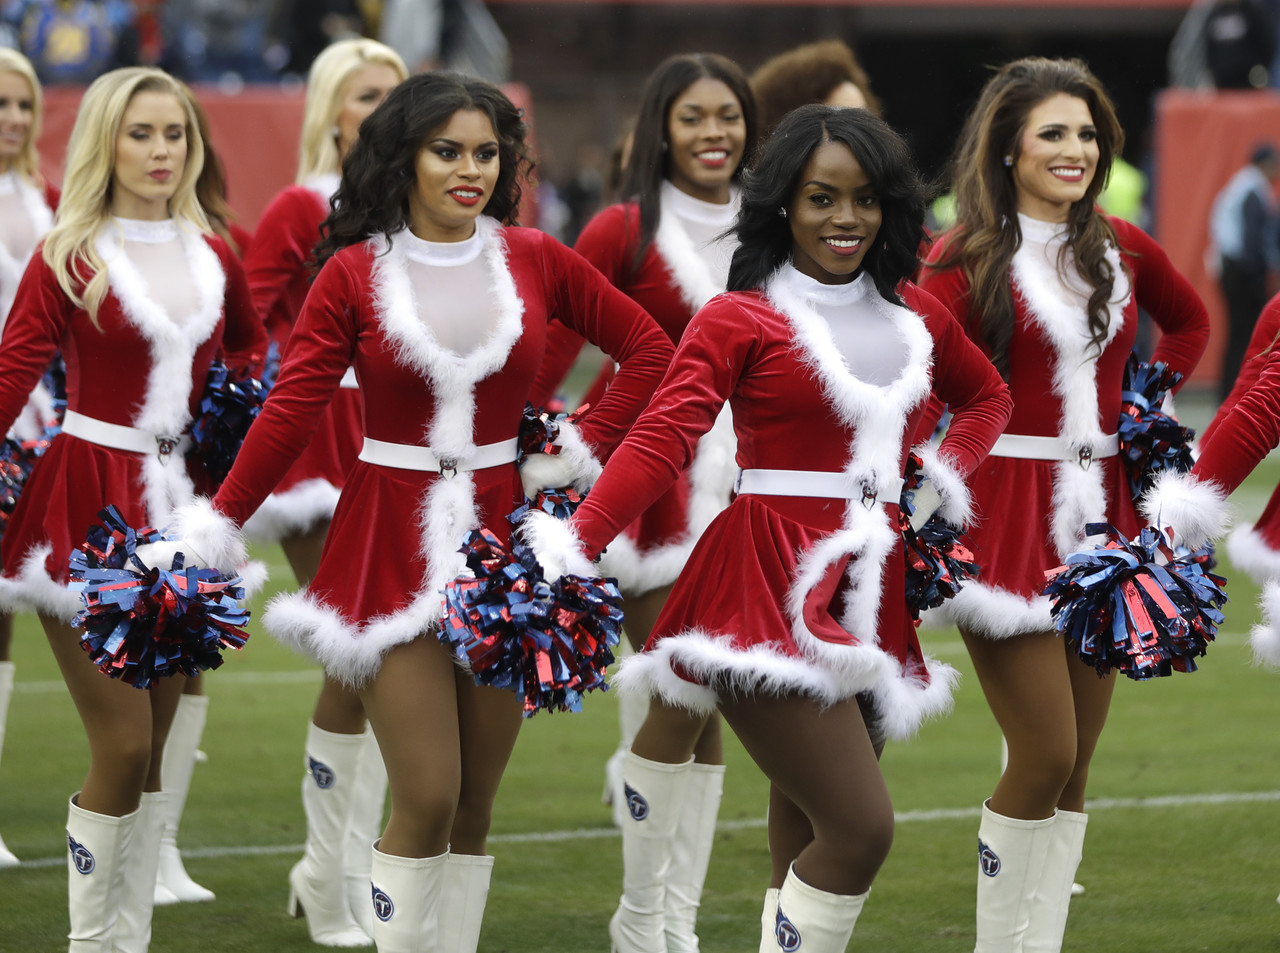 Tennessee Titans cheerleaders perform before an NFL football game between the Titans and the Los Angeles Rams Sunday, Dec. 24, 2017, in Nashville, Tenn.